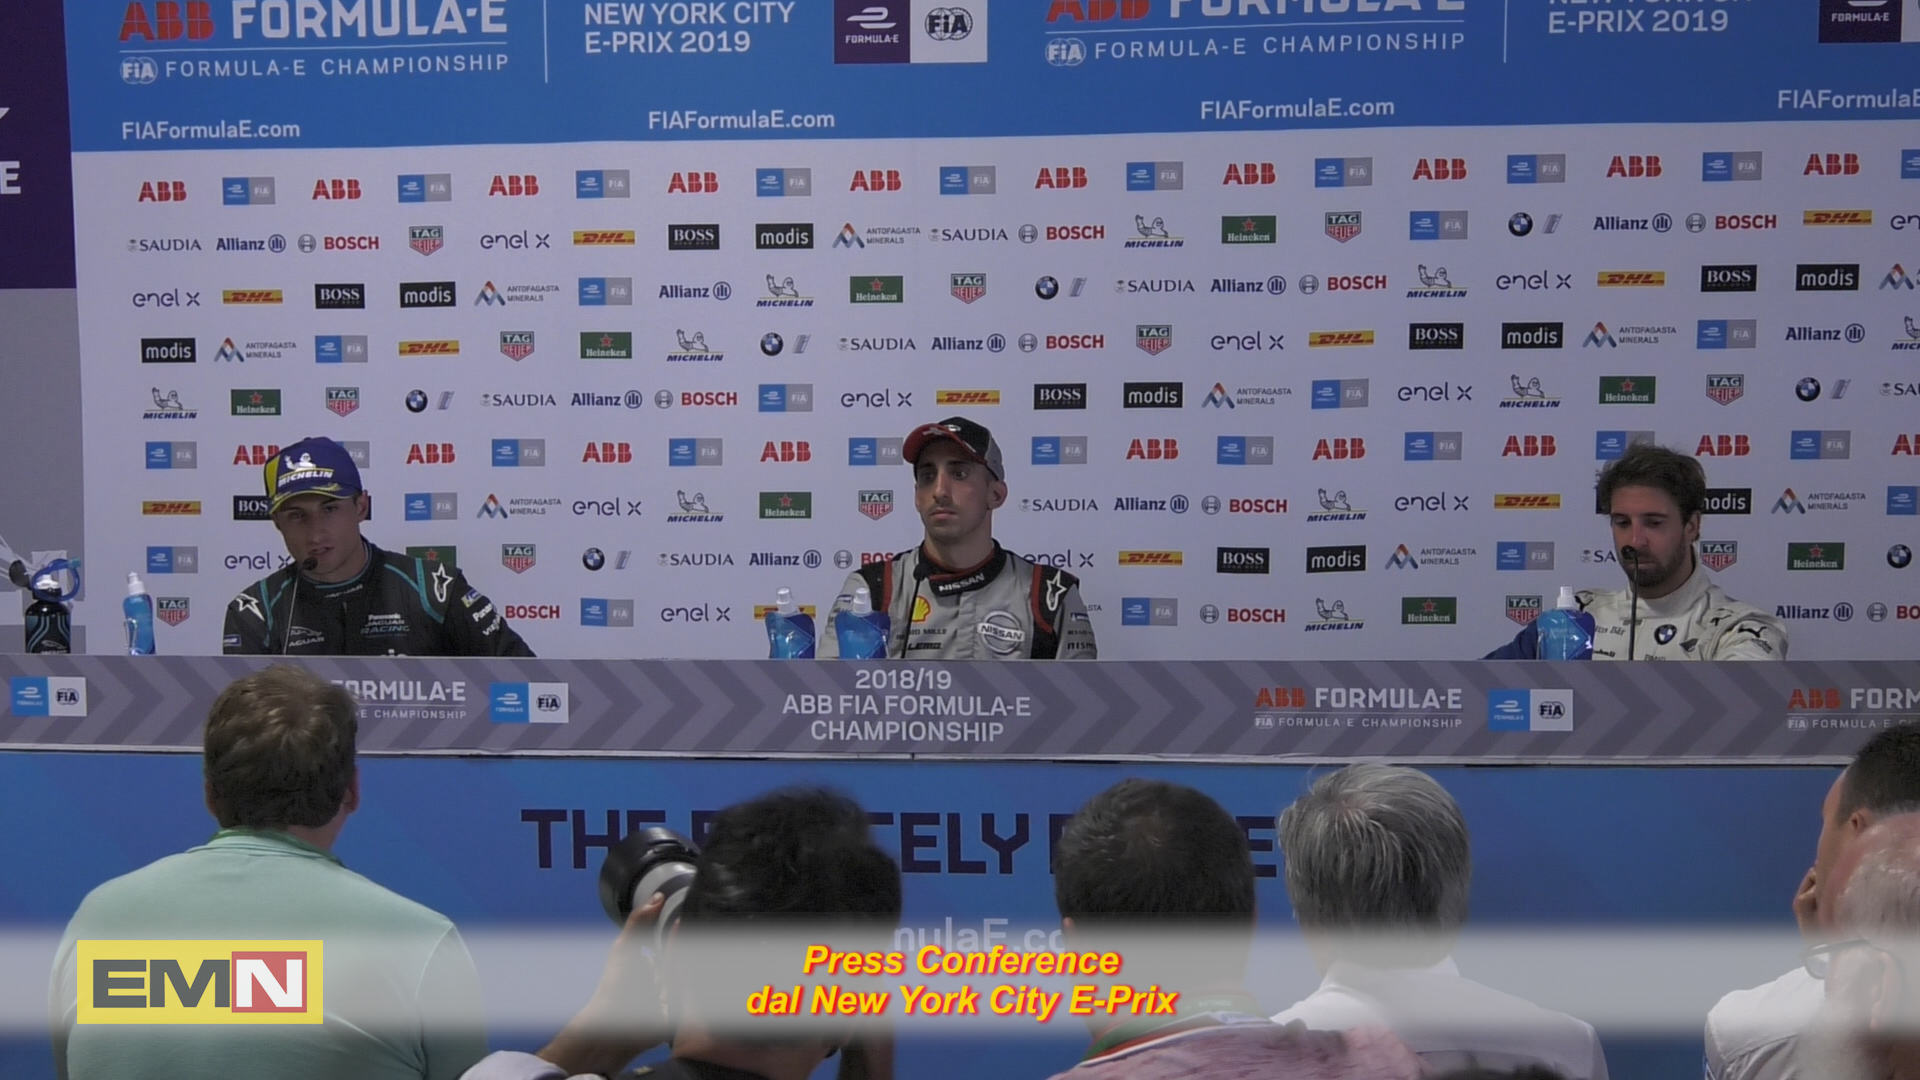 11-press-Conference